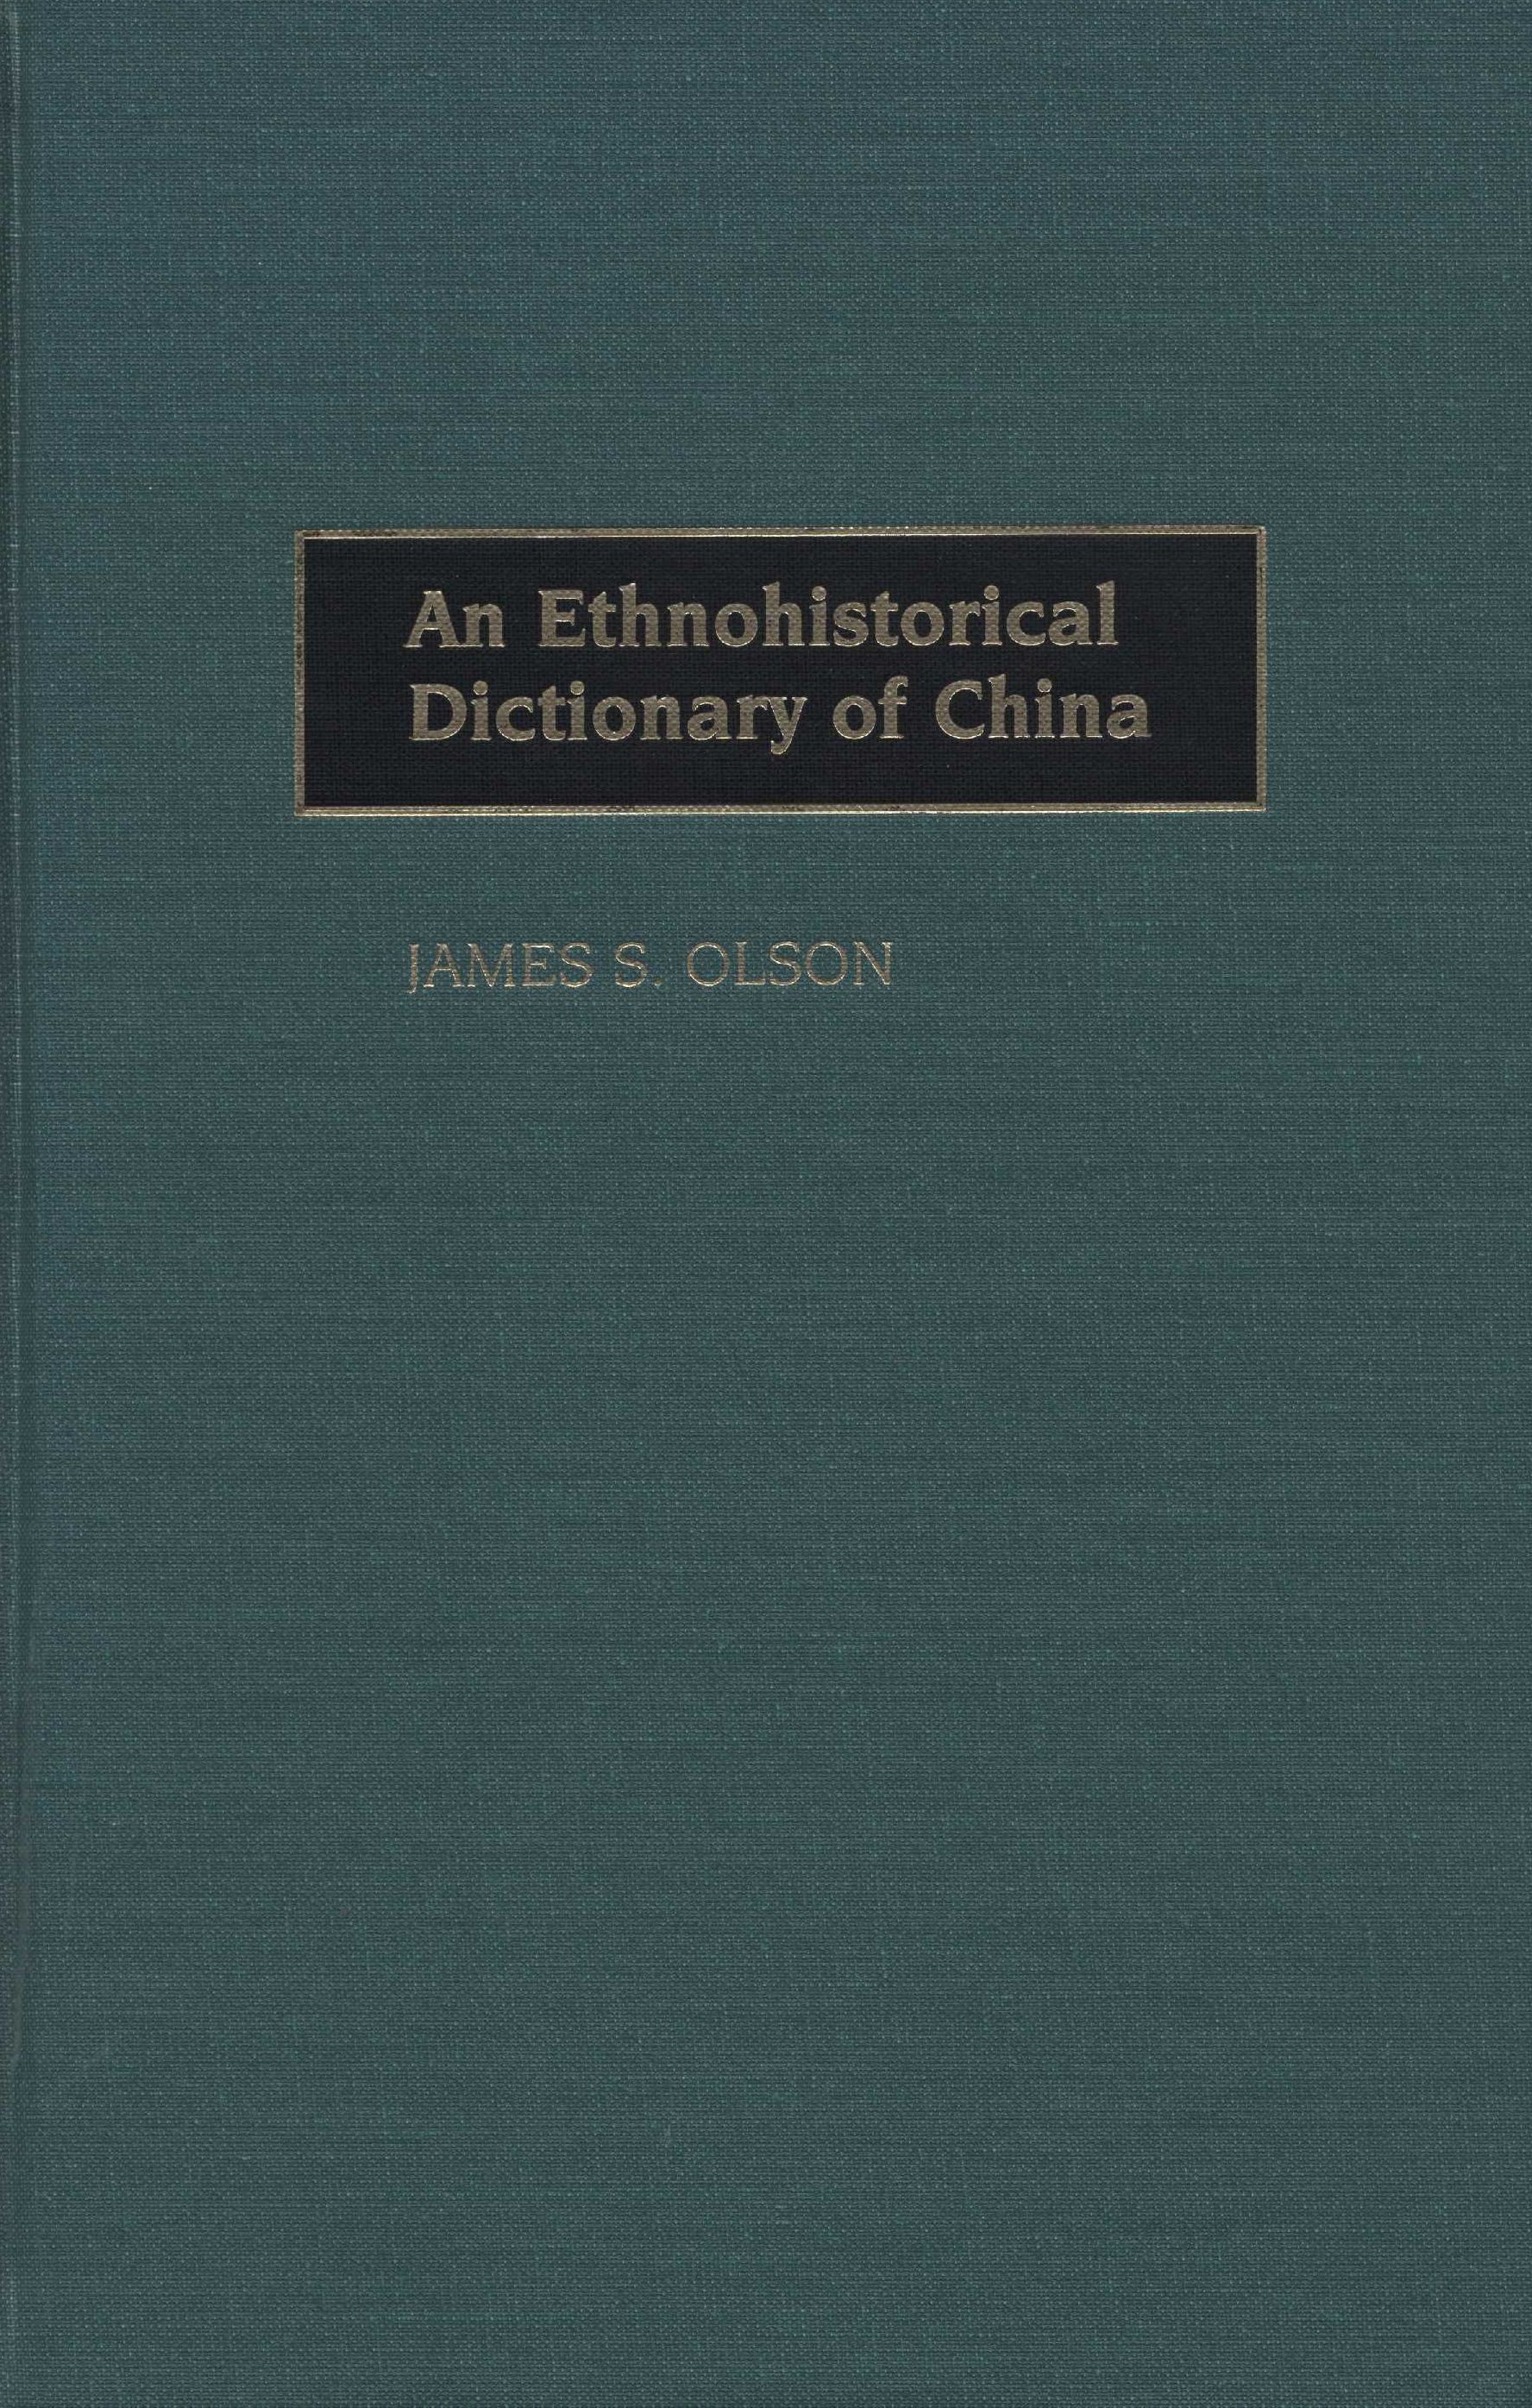 An ethnohistorical dictionary of China